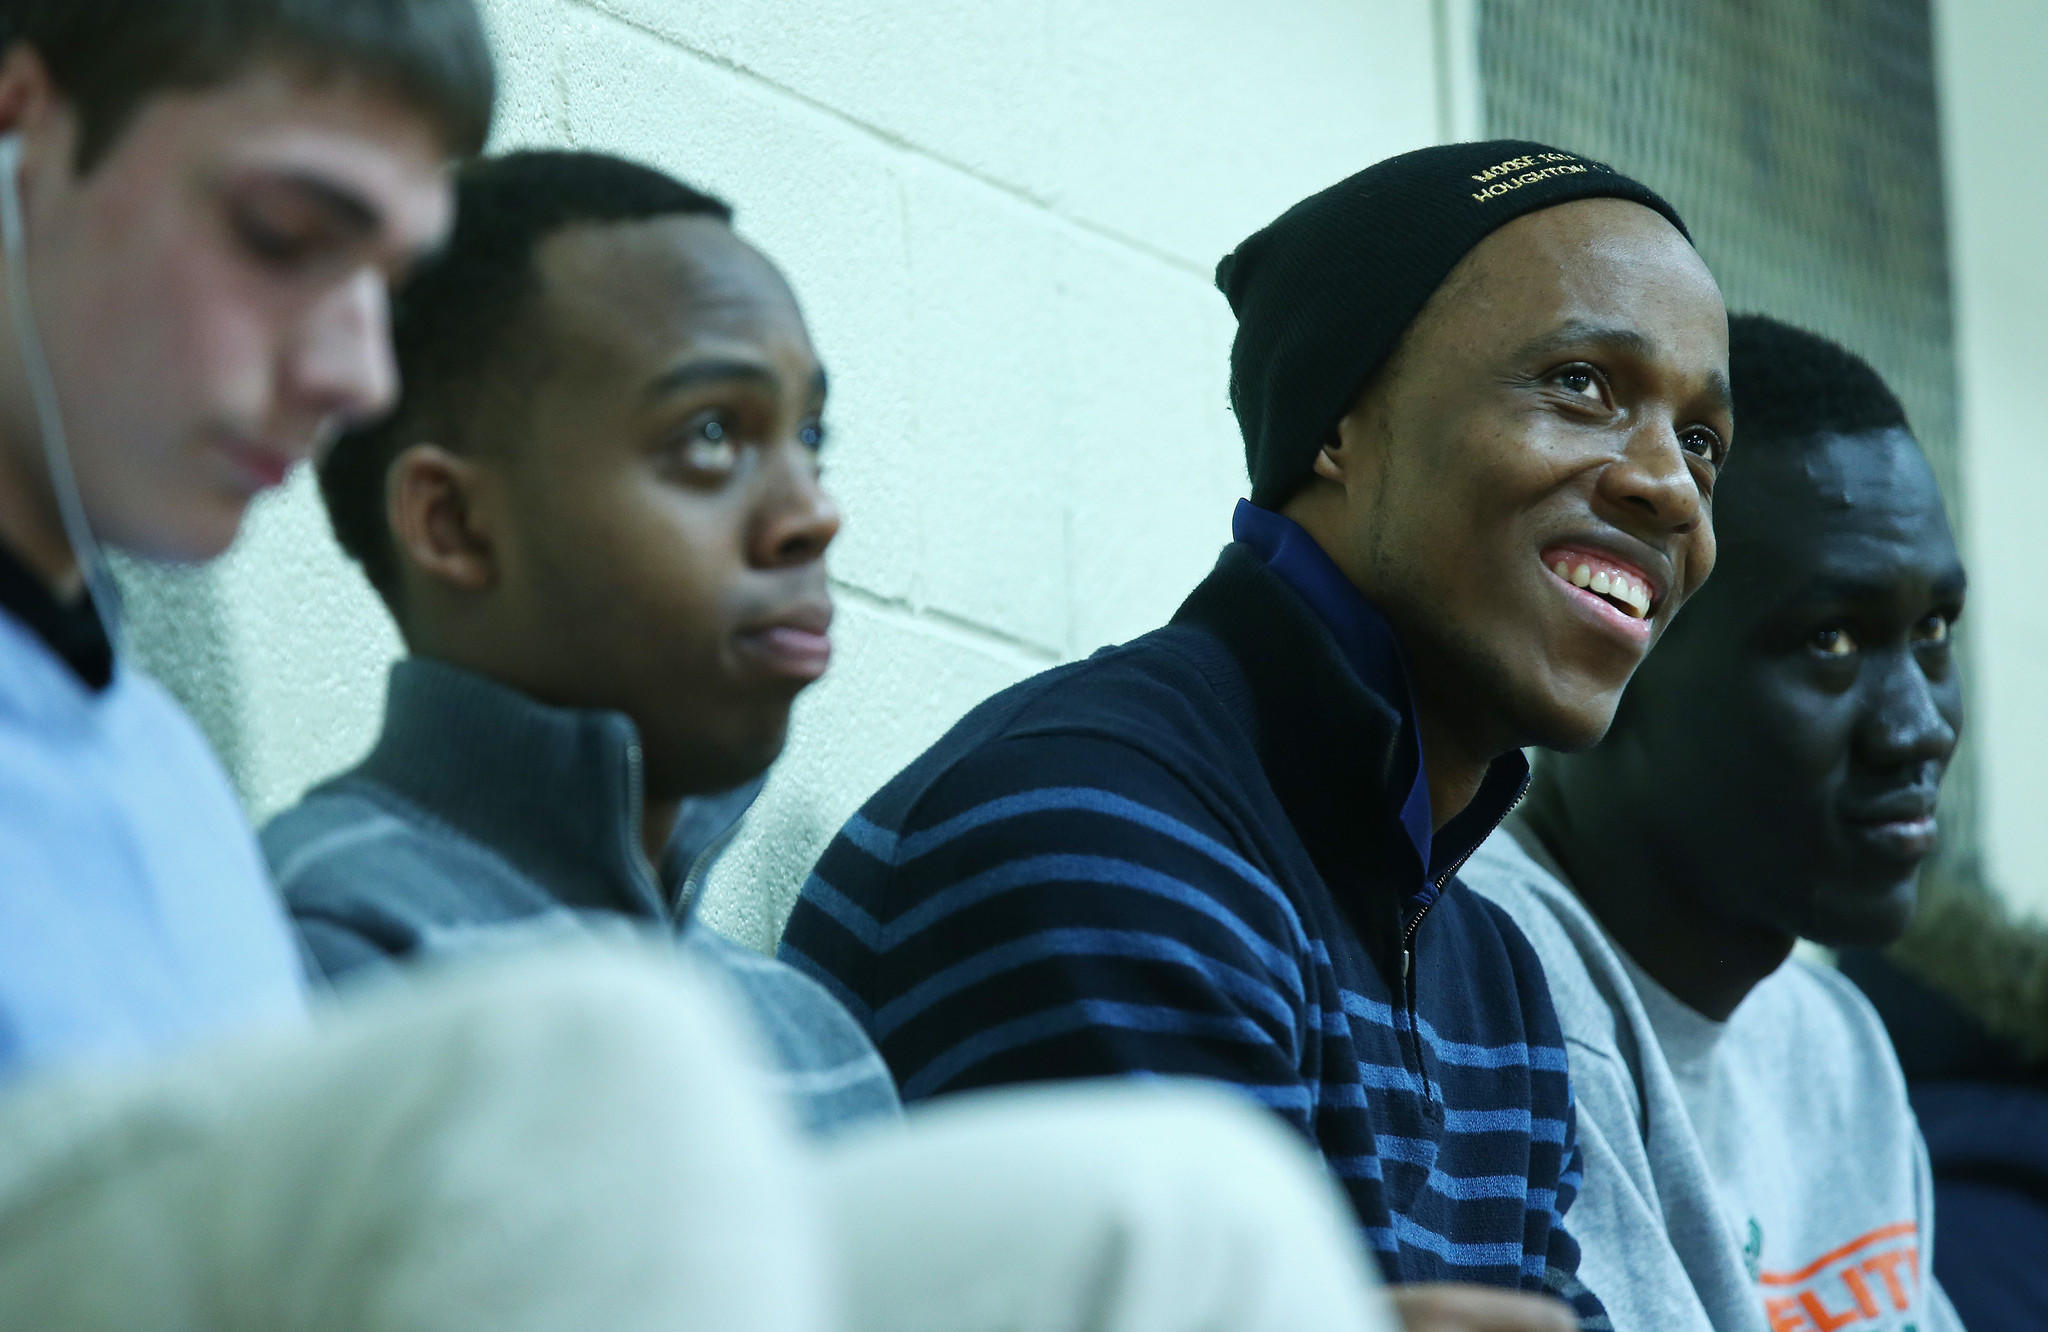 Mooseheart High School student Rodrigue Makindu, second from right, sits in the bleachers with friends before a playoff basketball game between Mooseheart and Serena High School at Somonauk High School.